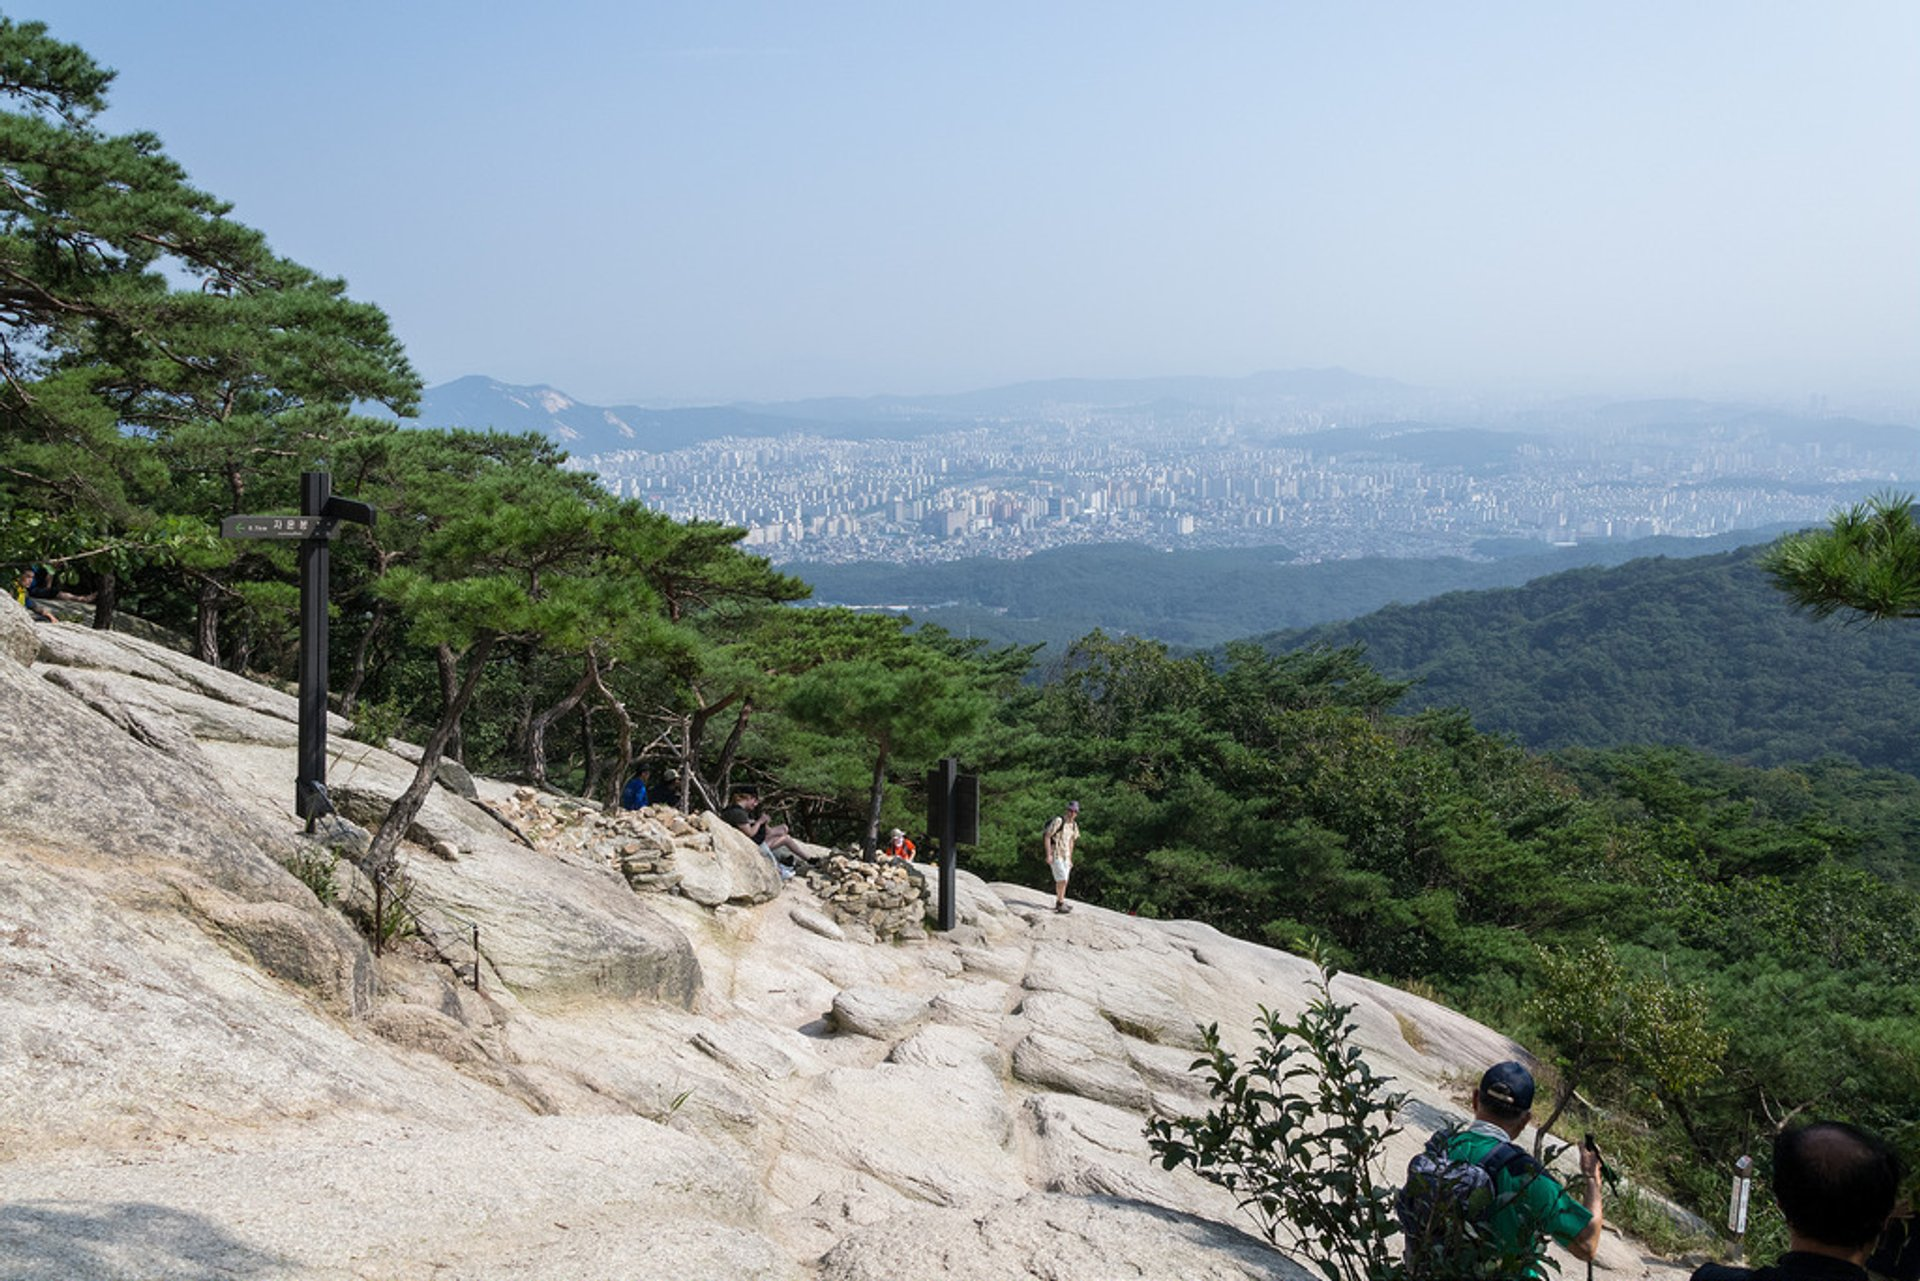 The view of Seoul from Bukhansan, Seoul 2019